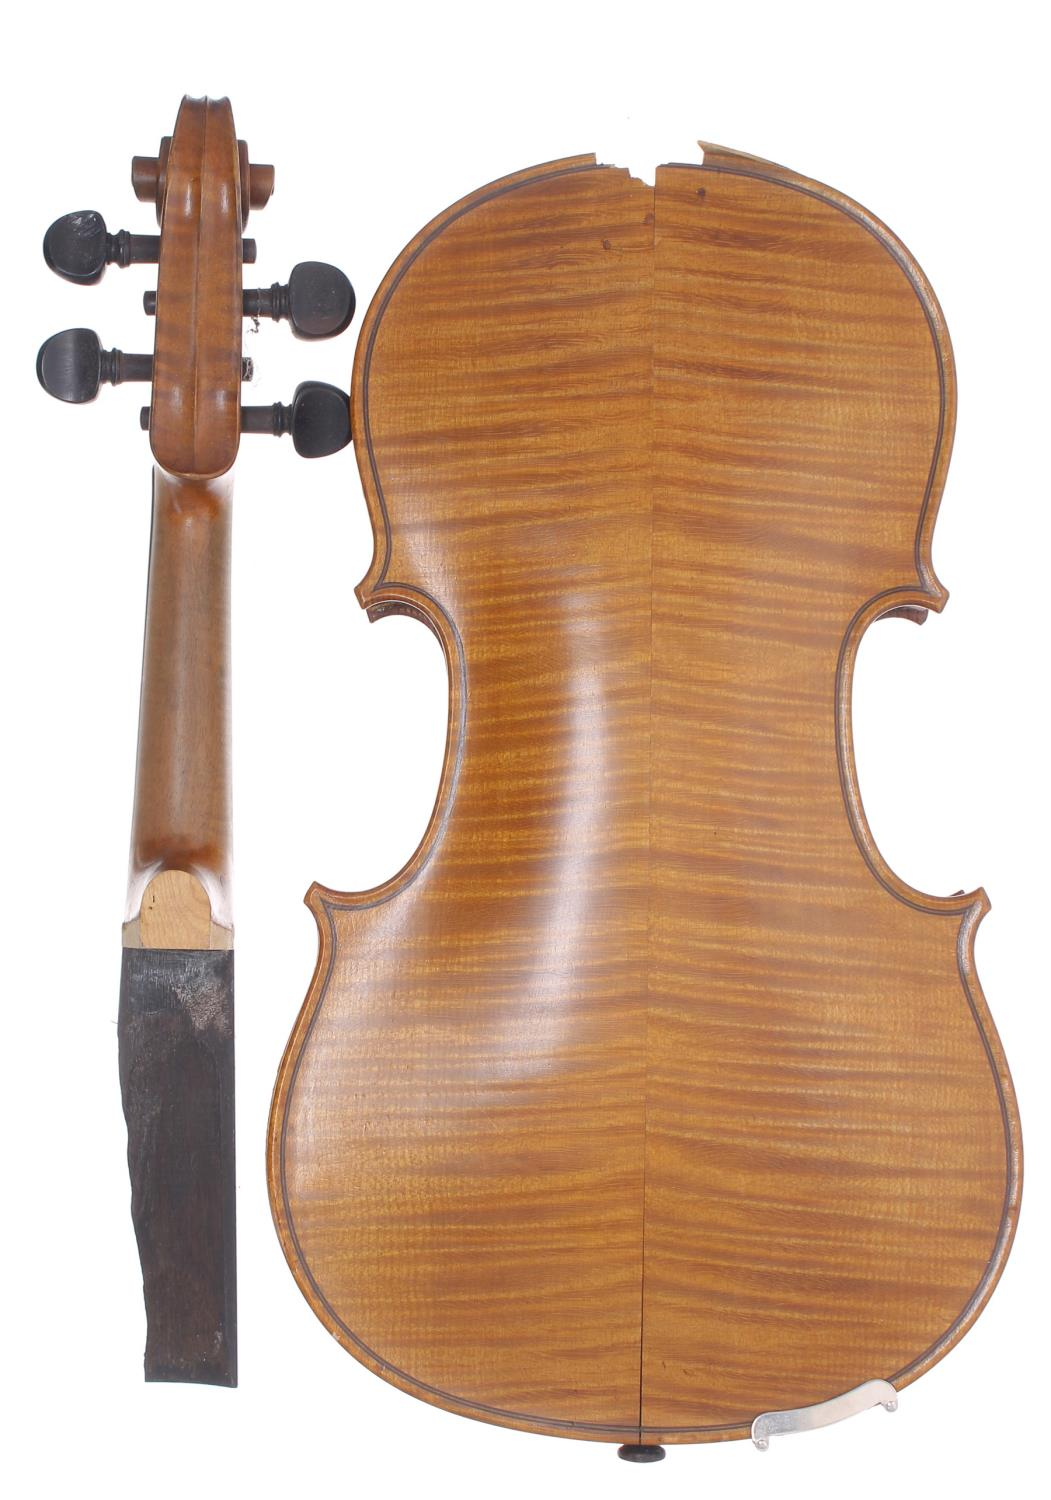 Early 20th century violin in need of restoration, case - Image 2 of 4